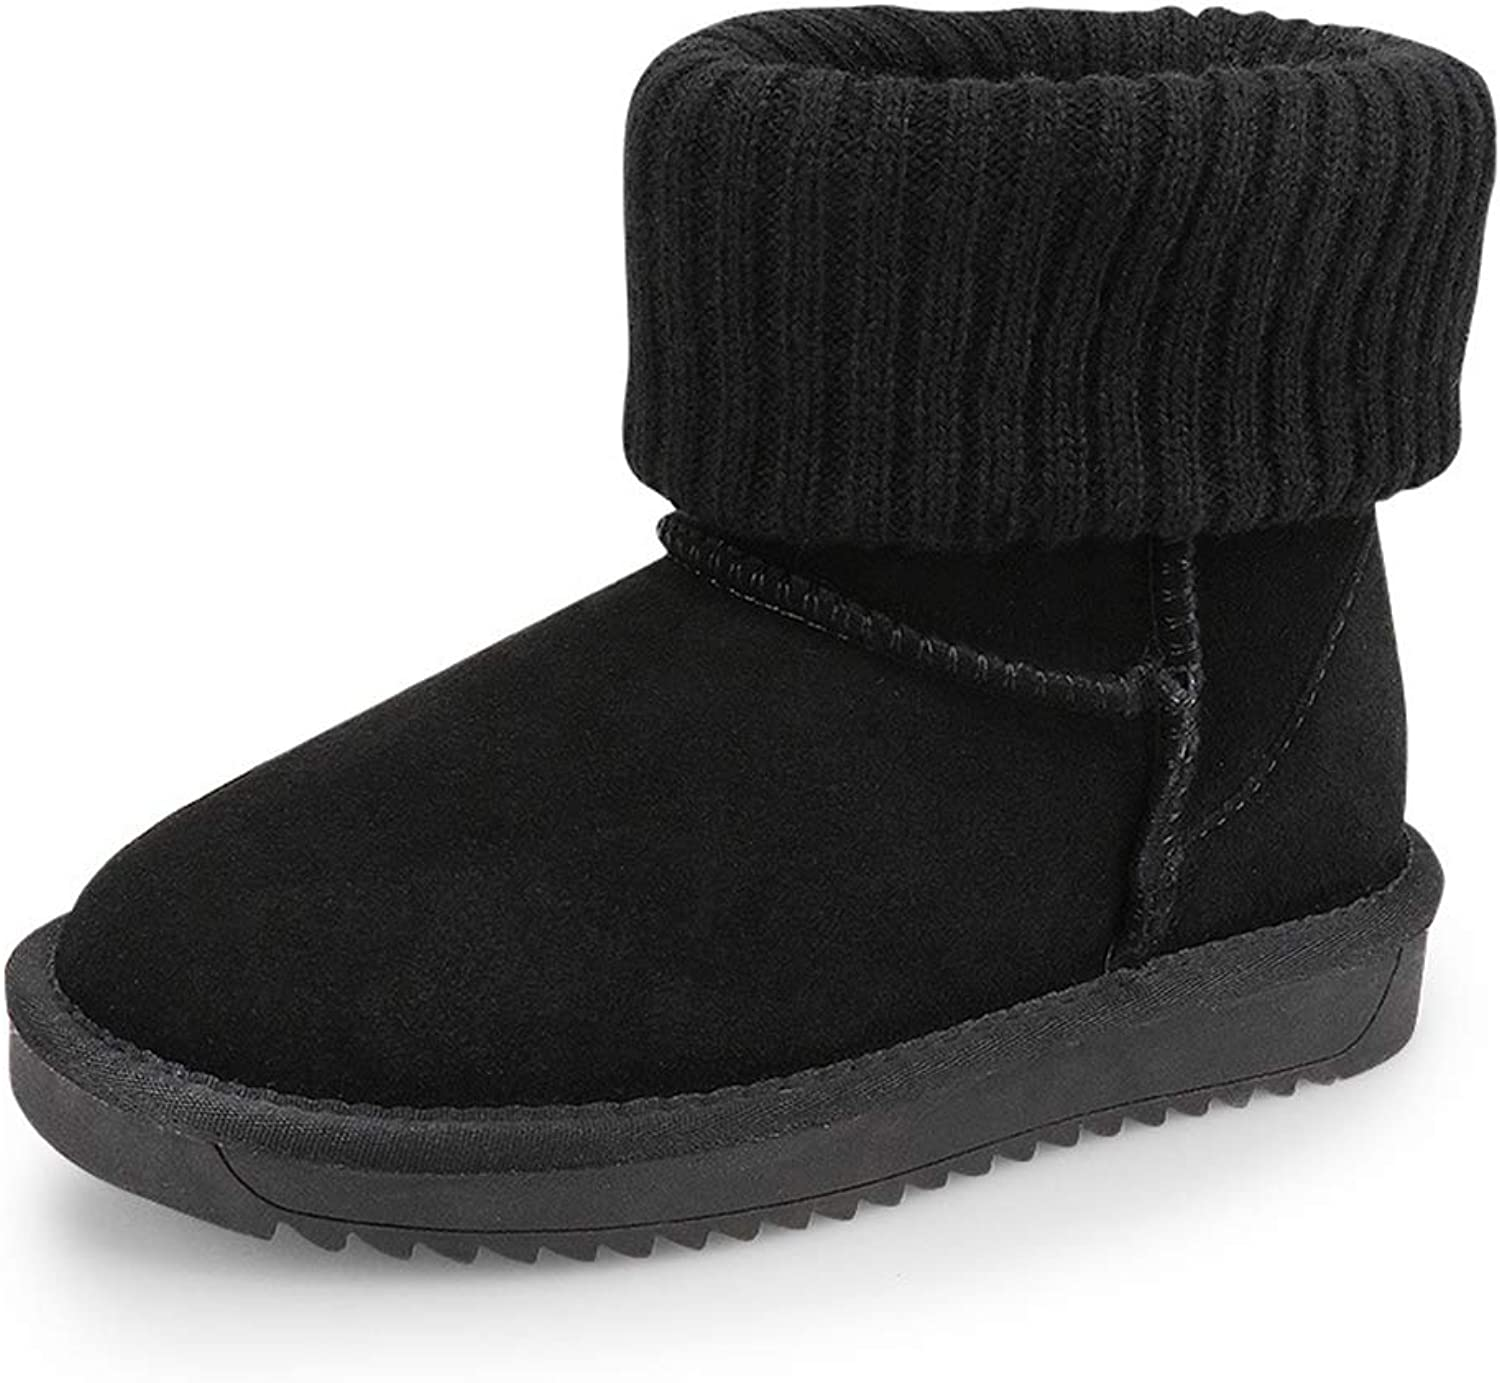 Kids Winter Warm Snow Boots Girl's Fur Lined Boots ToddlerBoot